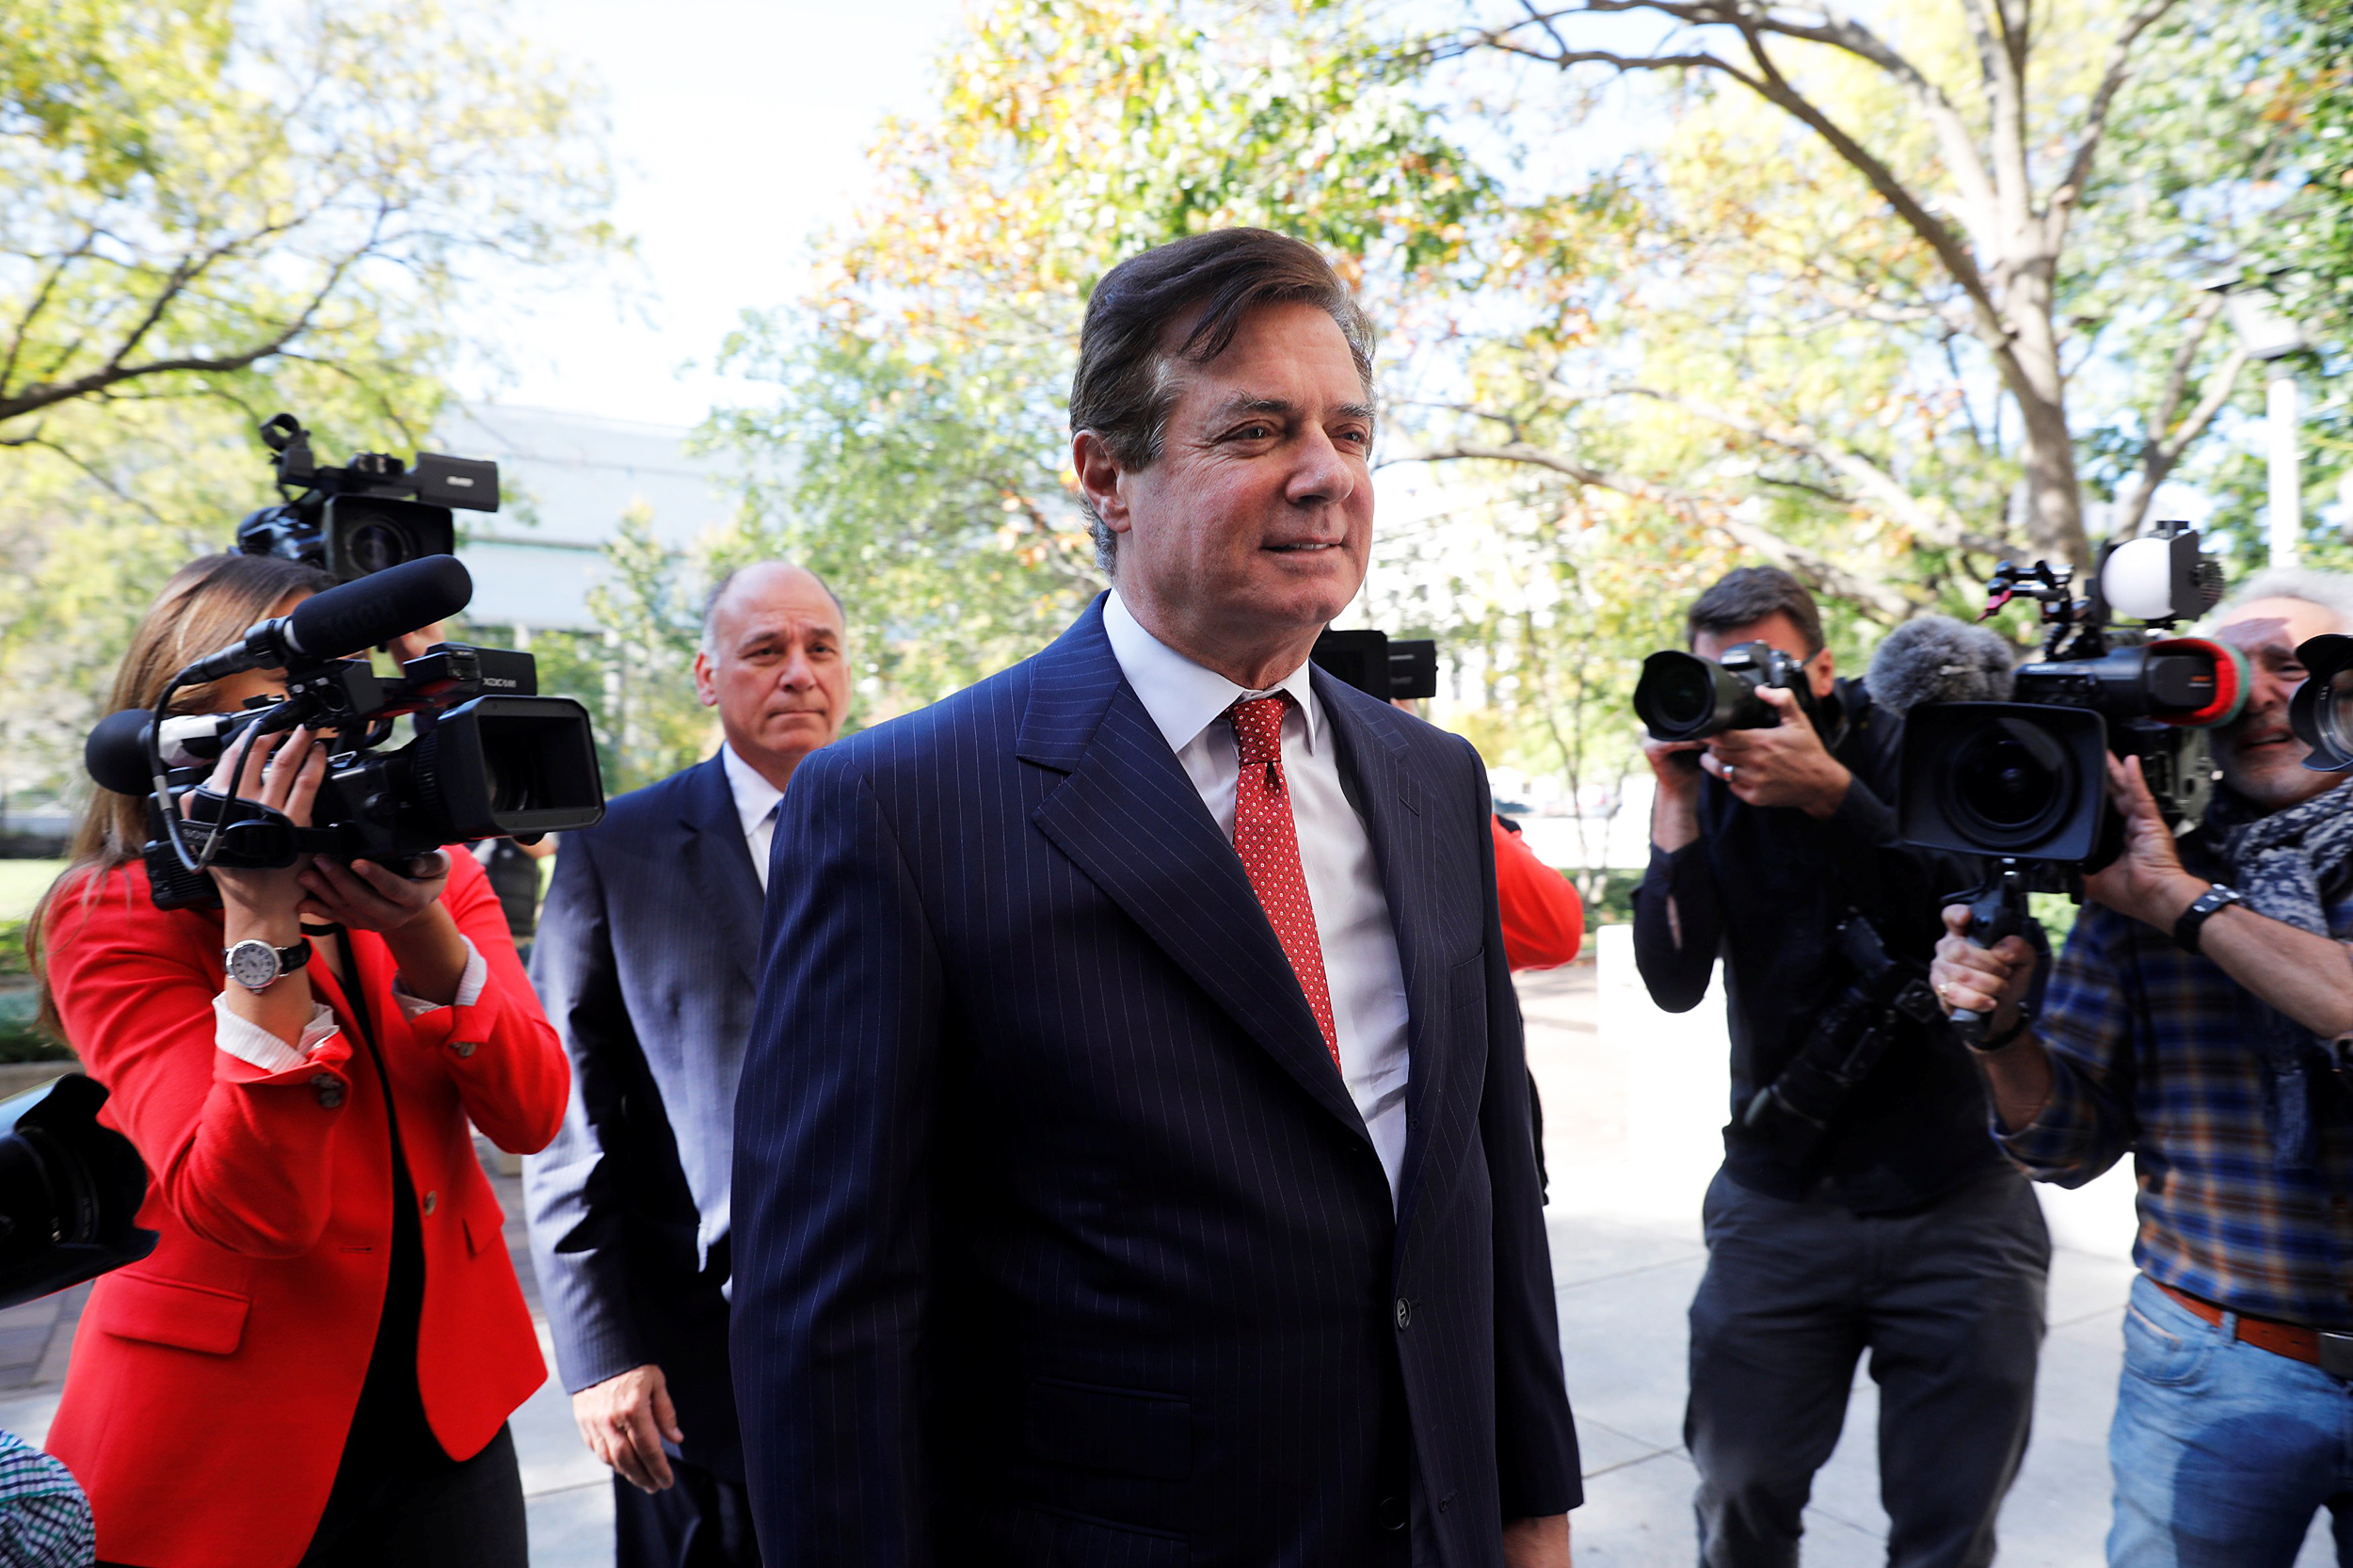 Image: U.S. President Donald Trump's former campaign manager Paul Manafort arrives for a hearing at U.S. District Court in Washington